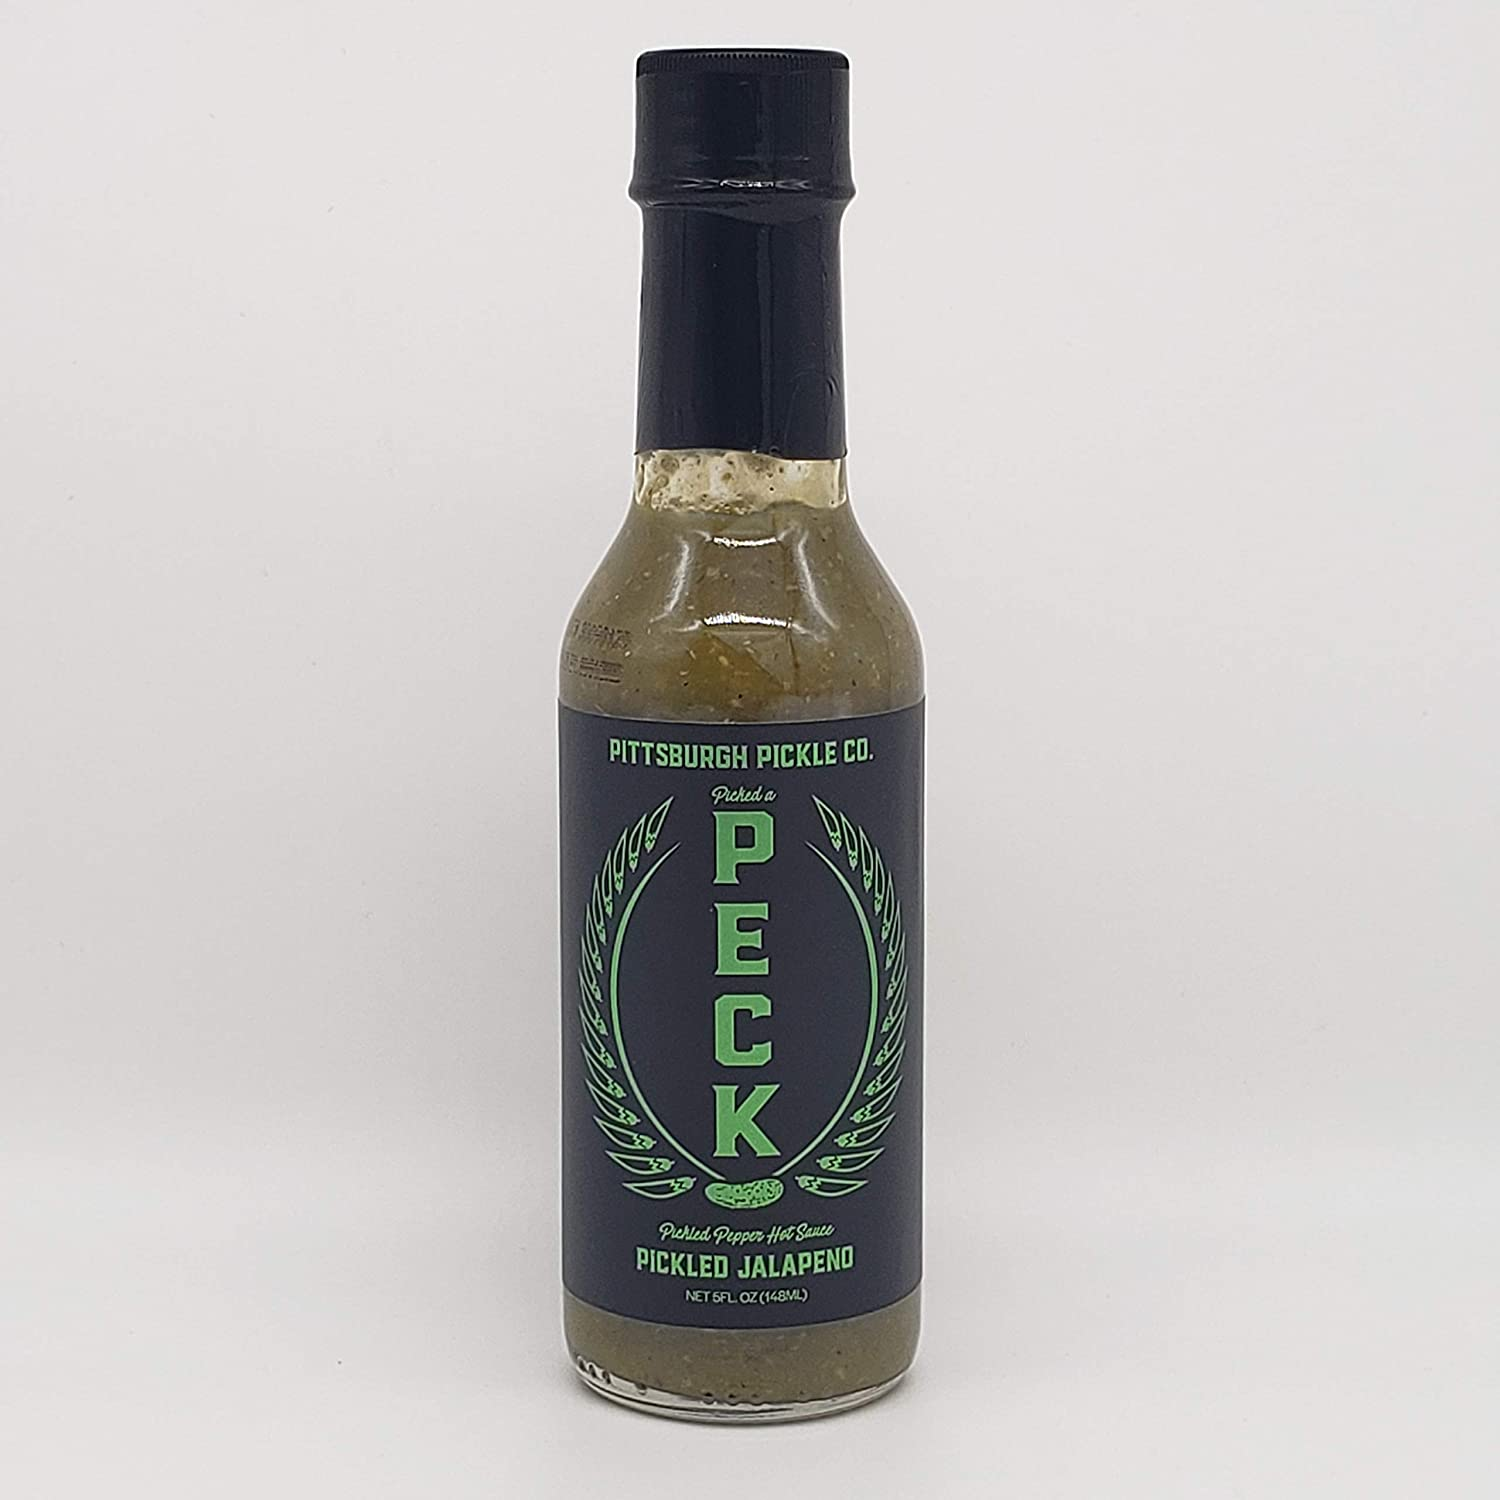 Pickled Jalapeno Peck - A Pittsburgh Pickle Company Hot Sauce